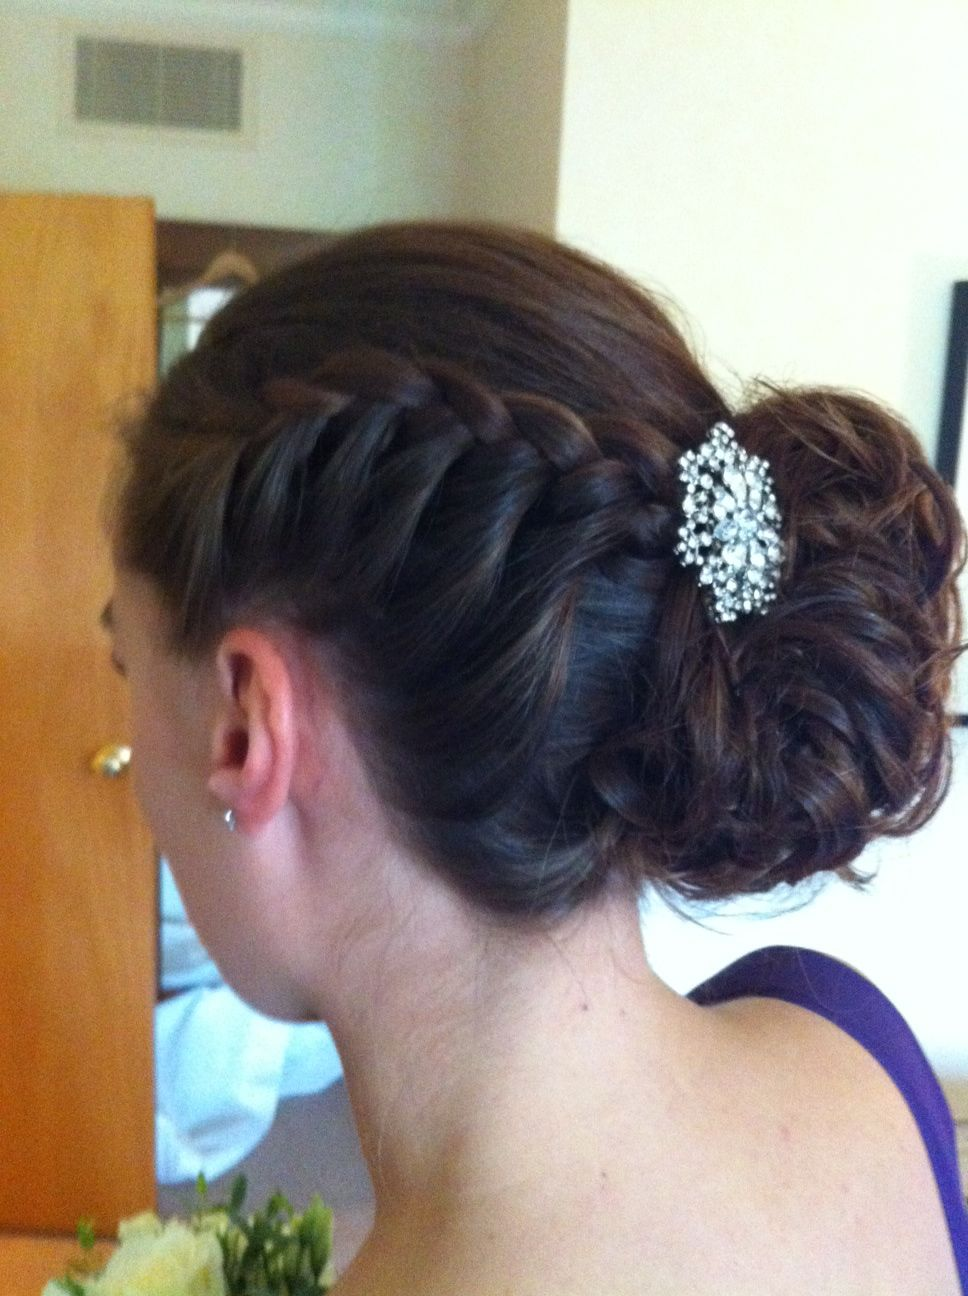 Bridesmaid plaited Chignon by Stacey at Philosophy Newark | Wedding hairstyles, Hair beauty, Plaits